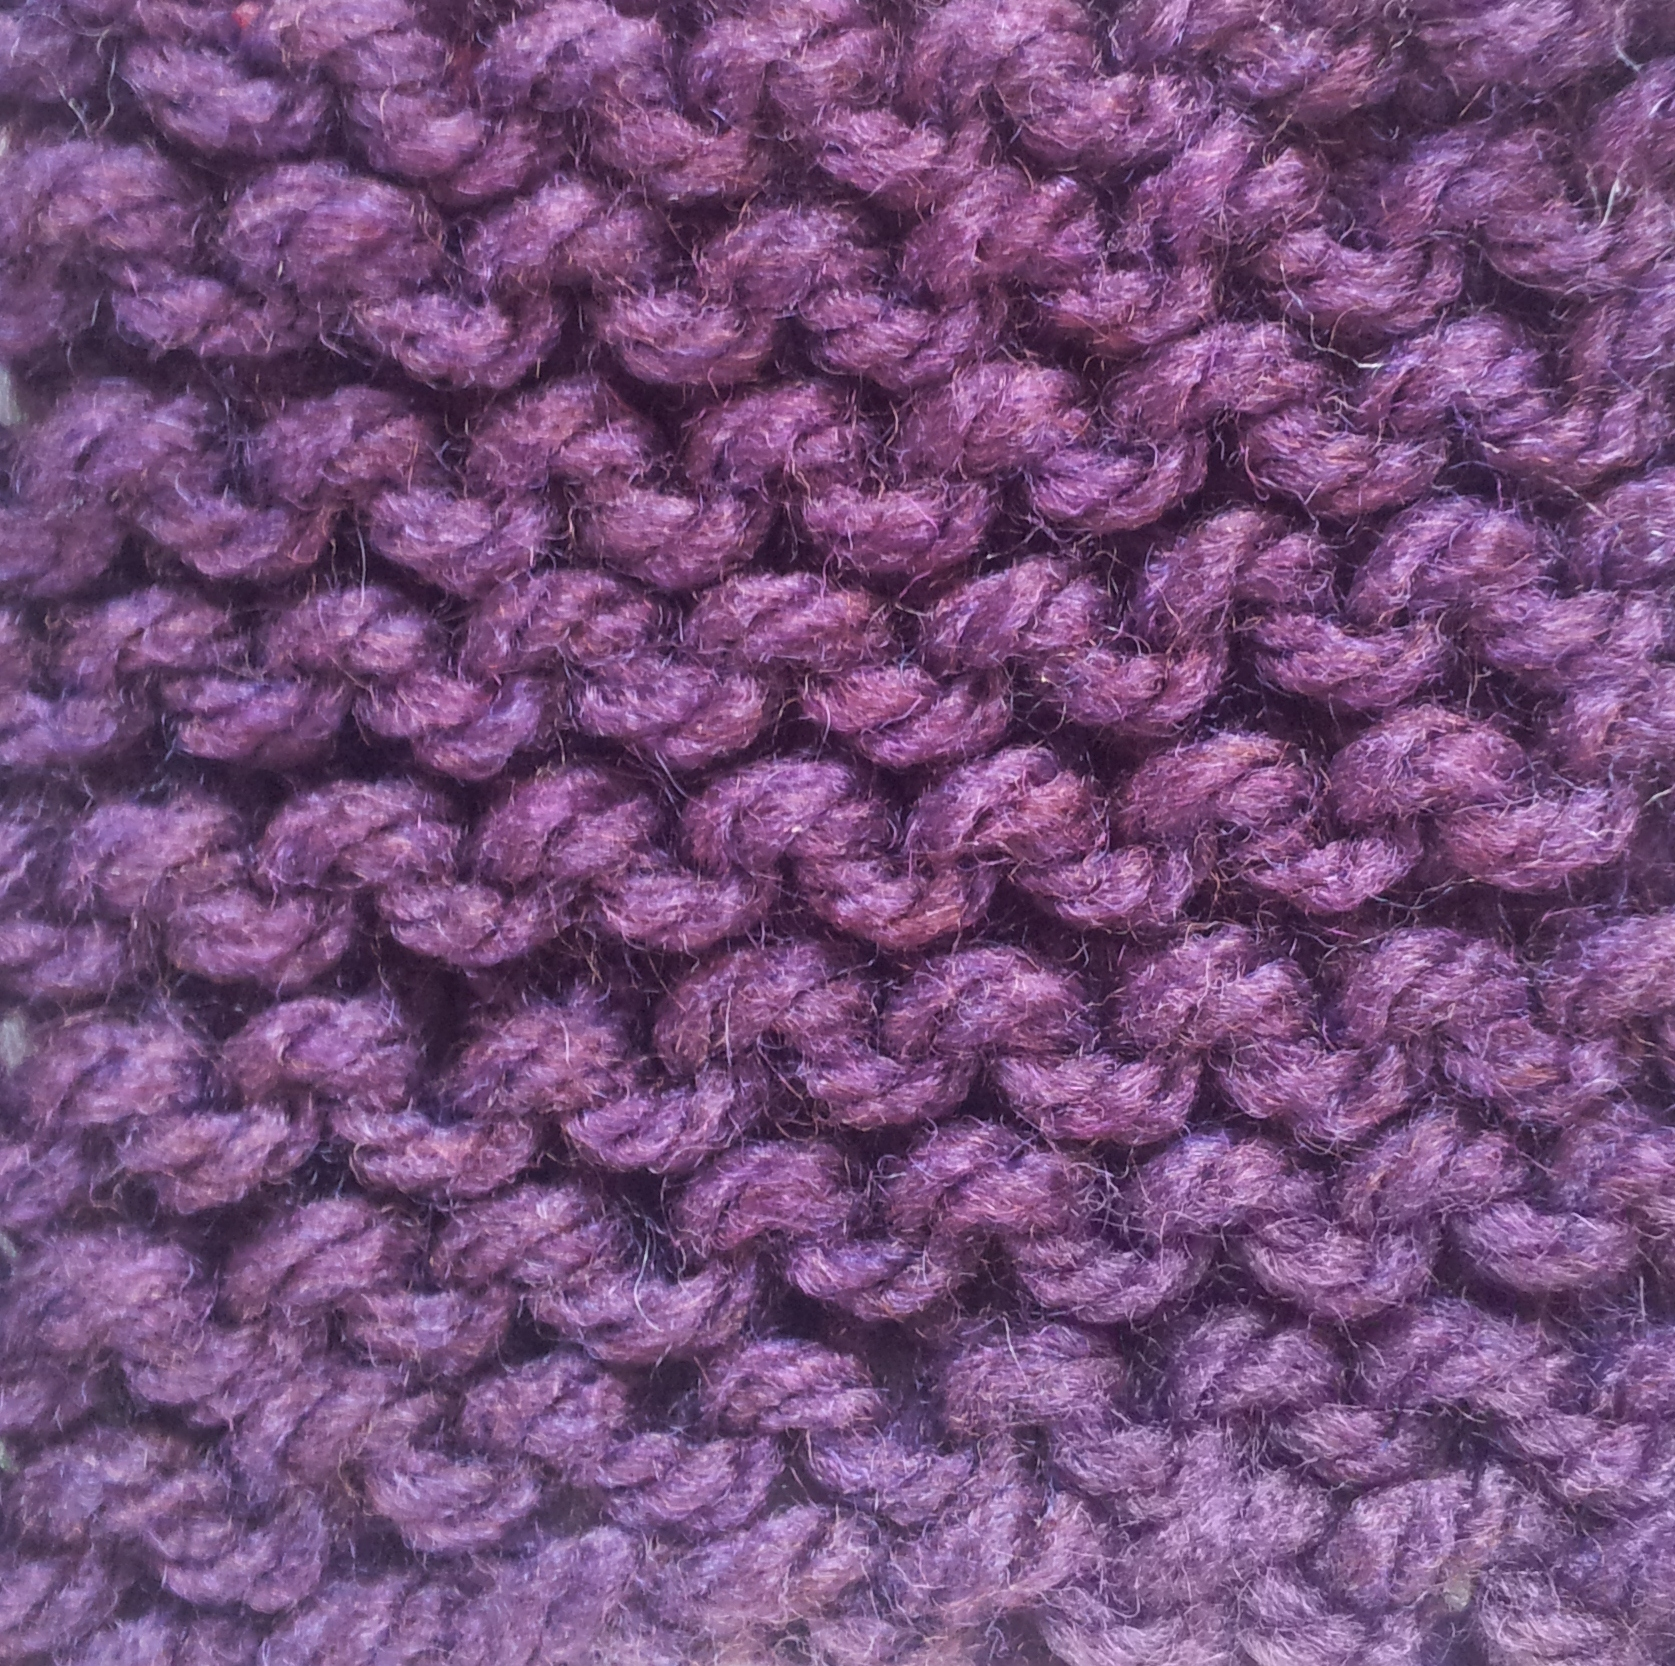 Crochet Knit Stitch : Basic Knitted Fabrics thestitchsharer